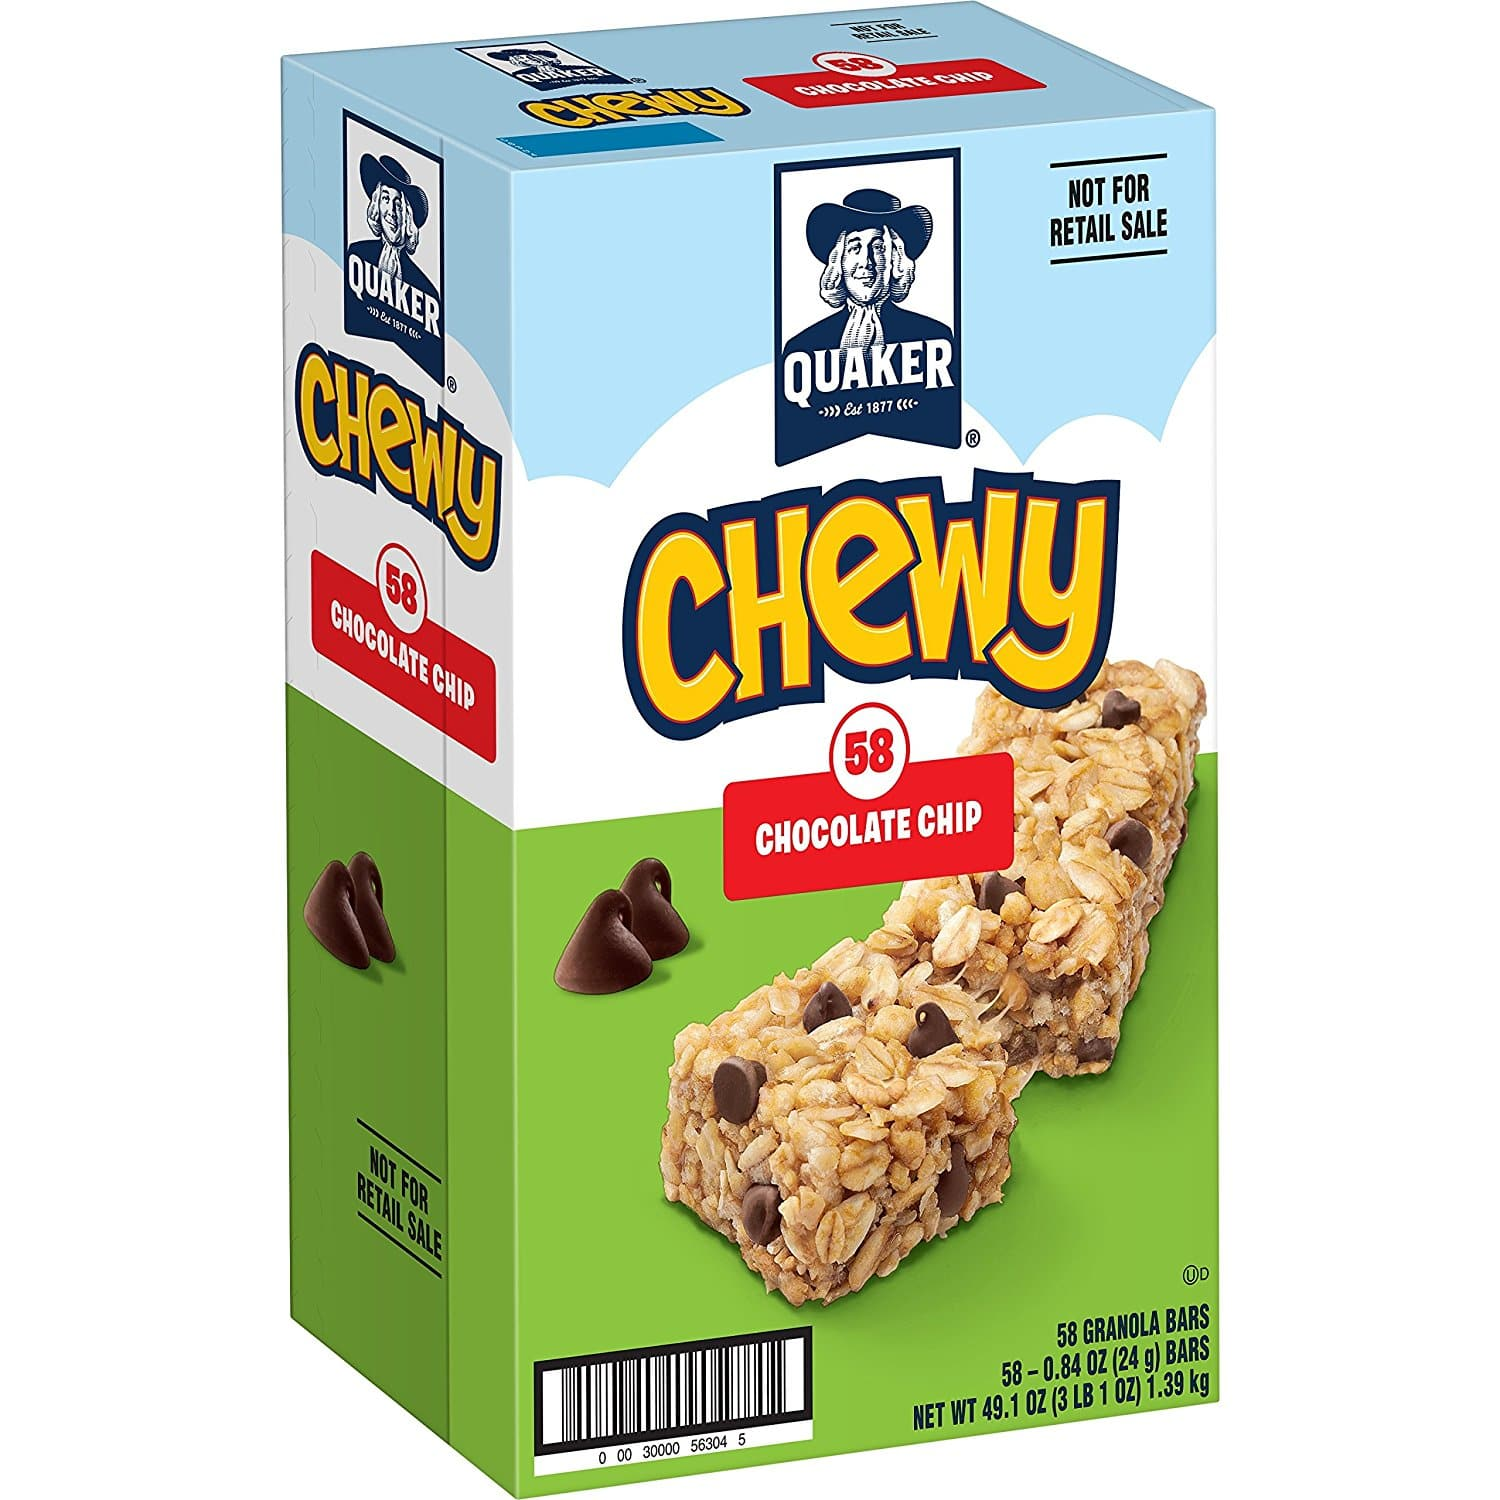 Add-on Item: 58-Count 0.84oz Quaker Chewy Granola Bars (Chocolate Chip) for $7.89